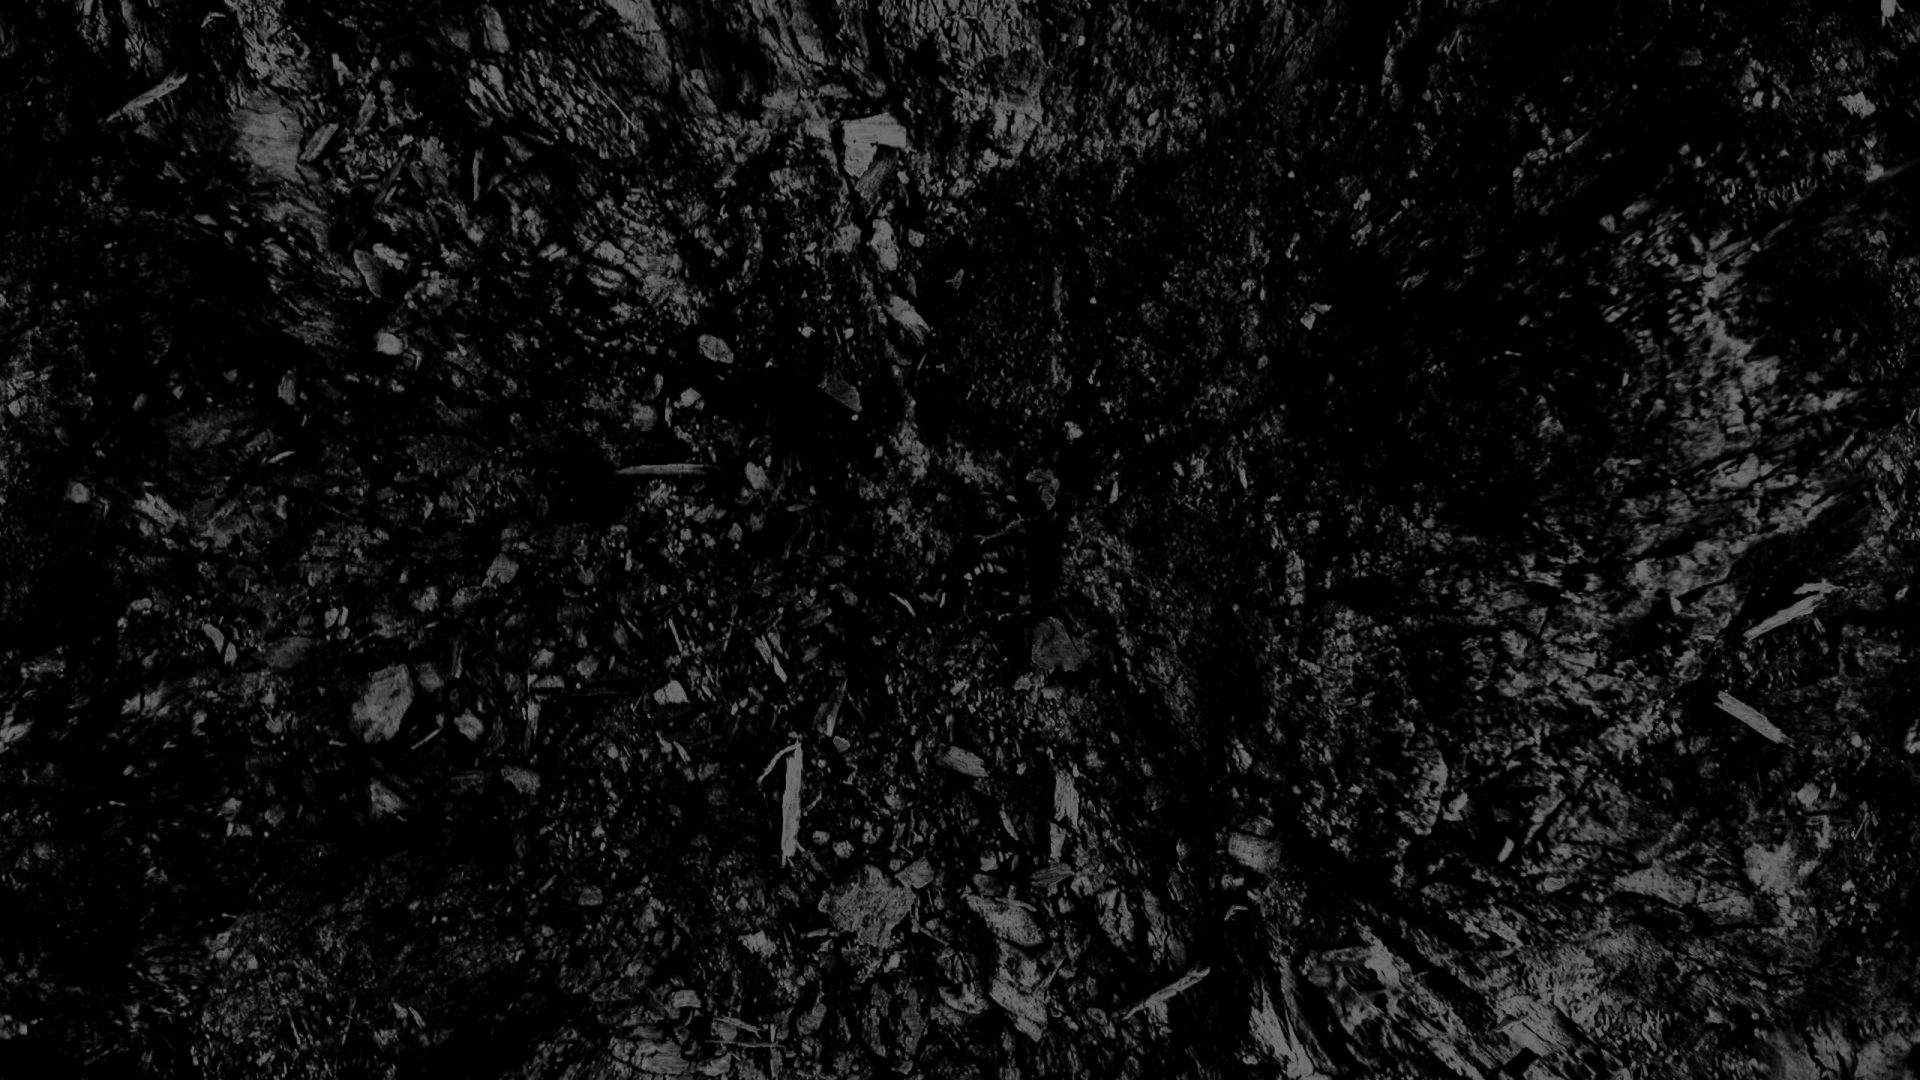 Earnings Disclaimer >> Download Wallpaper 1920x1080 dark, black and white, abstract, black background Full HD 1080p HD ...